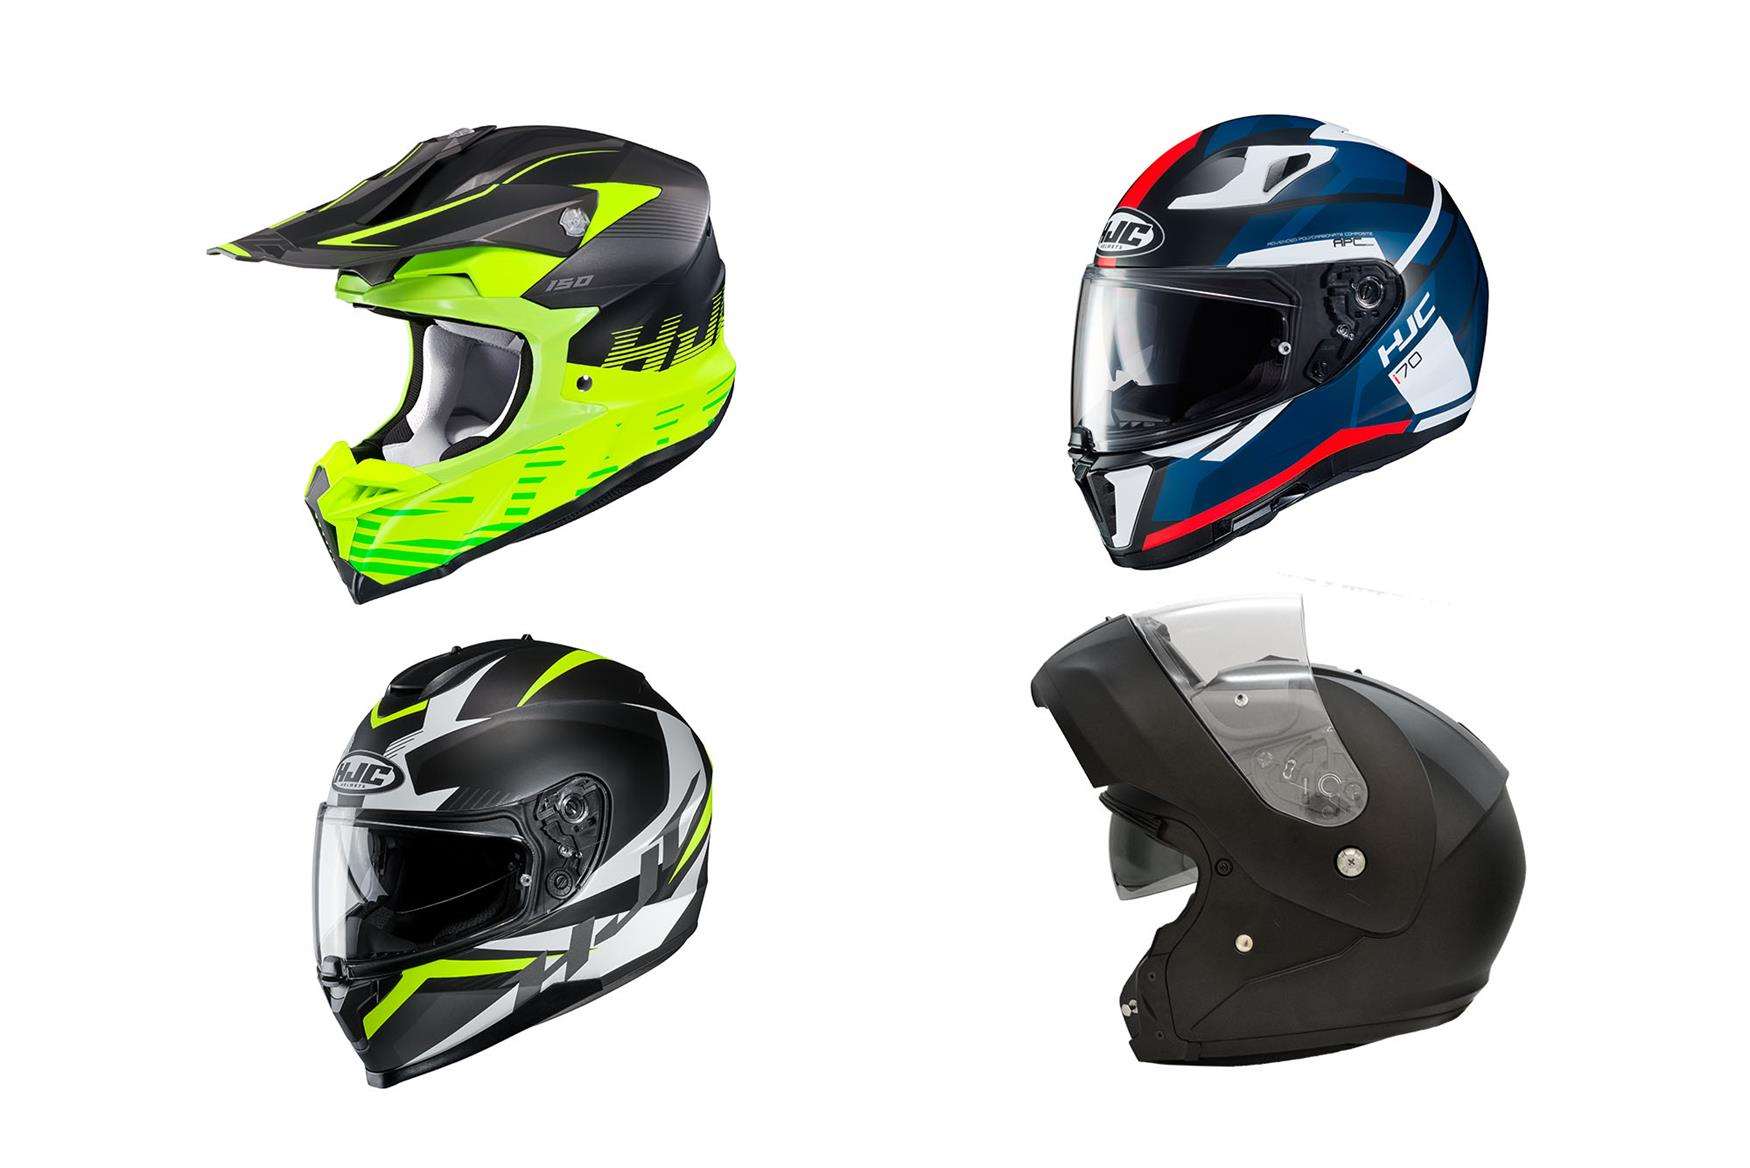 HJC unveil four new helmets for 2019